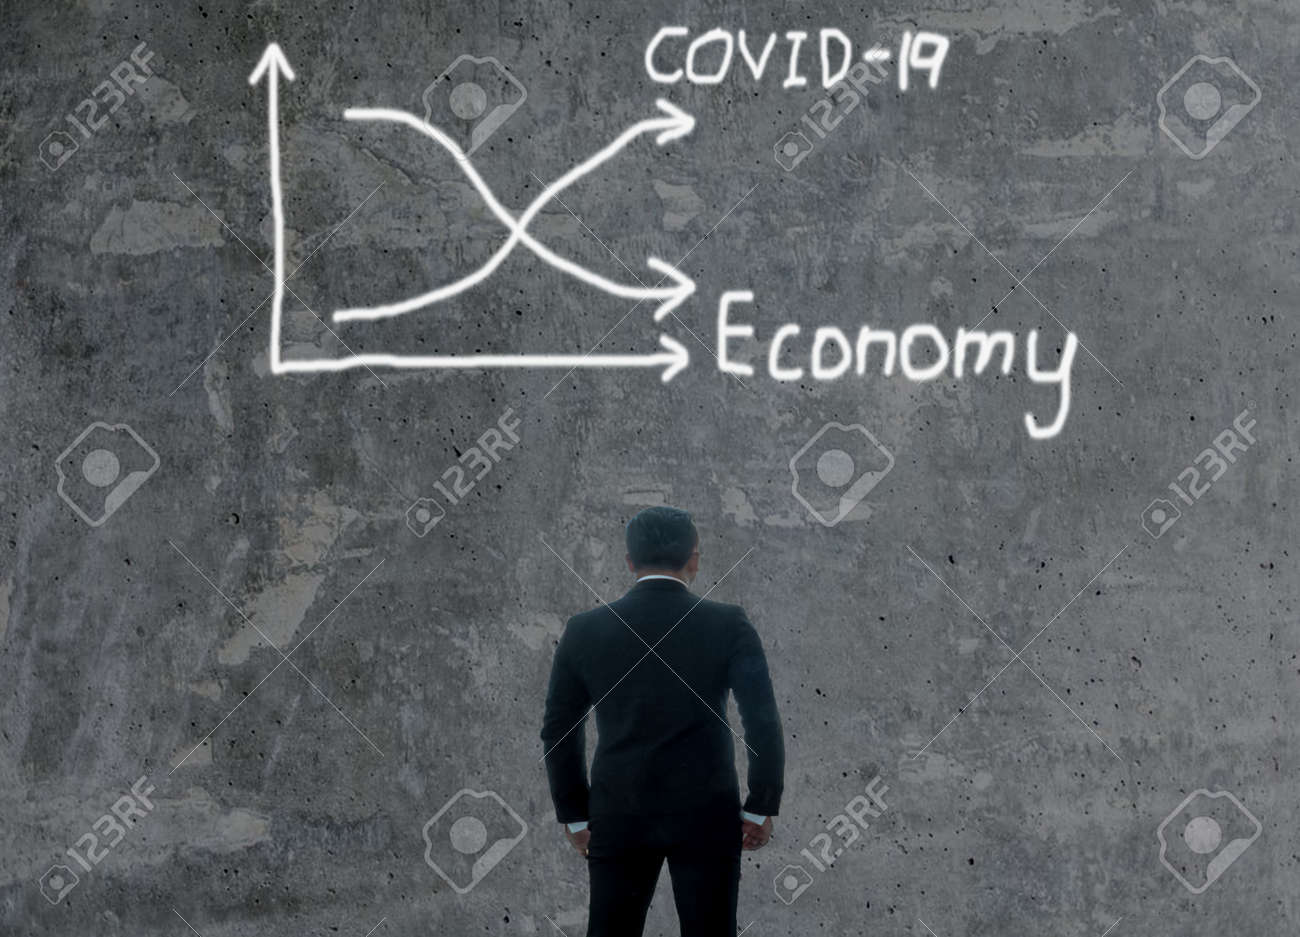 Busonessmen ceo manager company office start up is standing look chart graph down information arrow economy financial crisis from covid-19 corona virus disease.Male dicision strategy marketing - 158658895